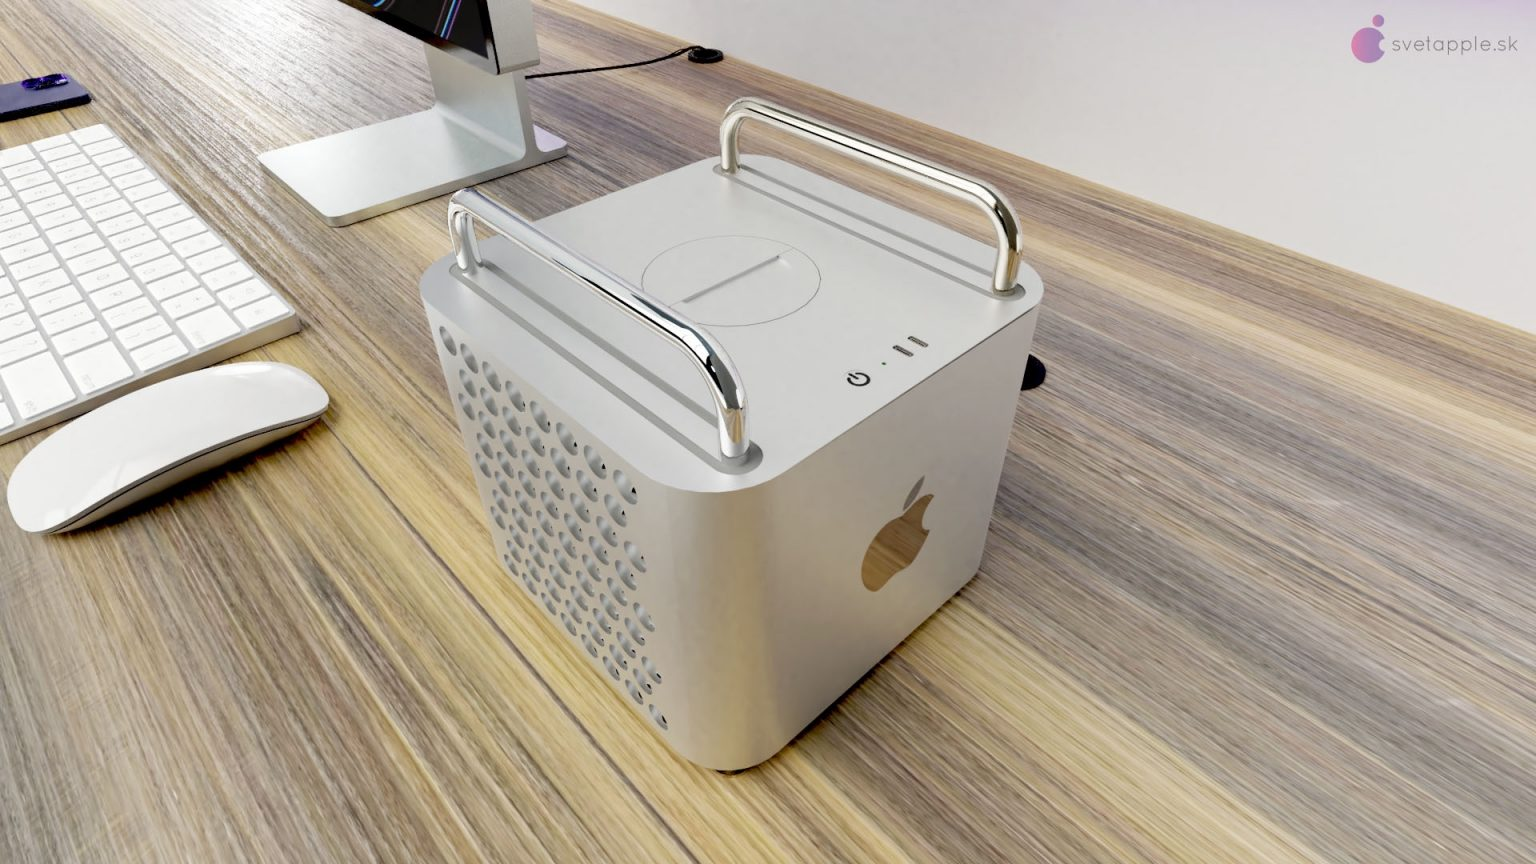 Amazing Mac Pro concept shrinks the casing but keeps the cheese grater